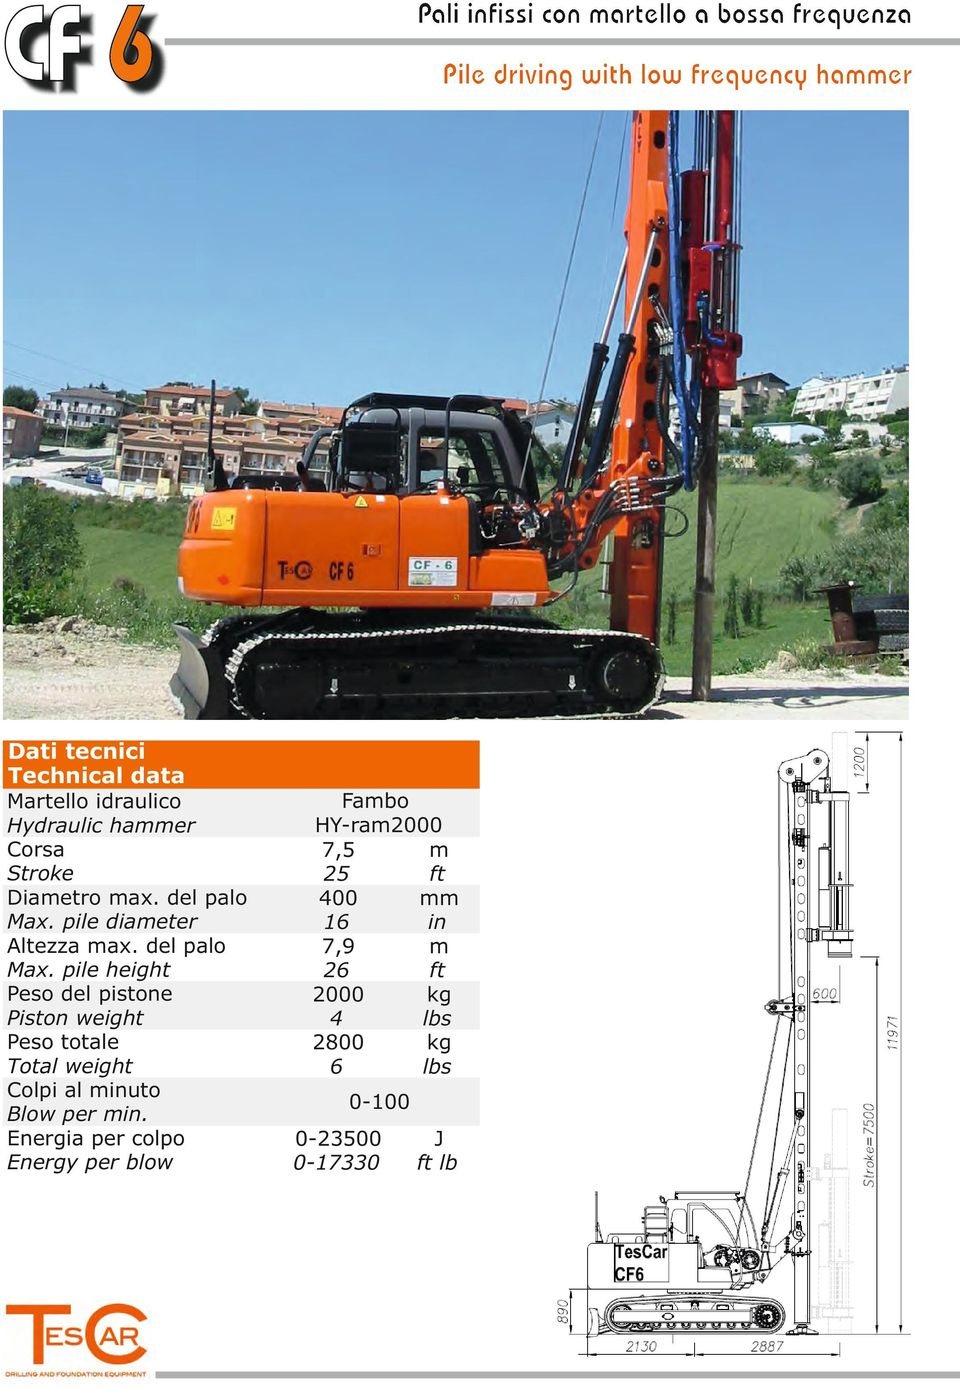 del palo Max. pile height Peso del pistone Piston weight Peso totale Total weight Colpi al muto Blow per m.